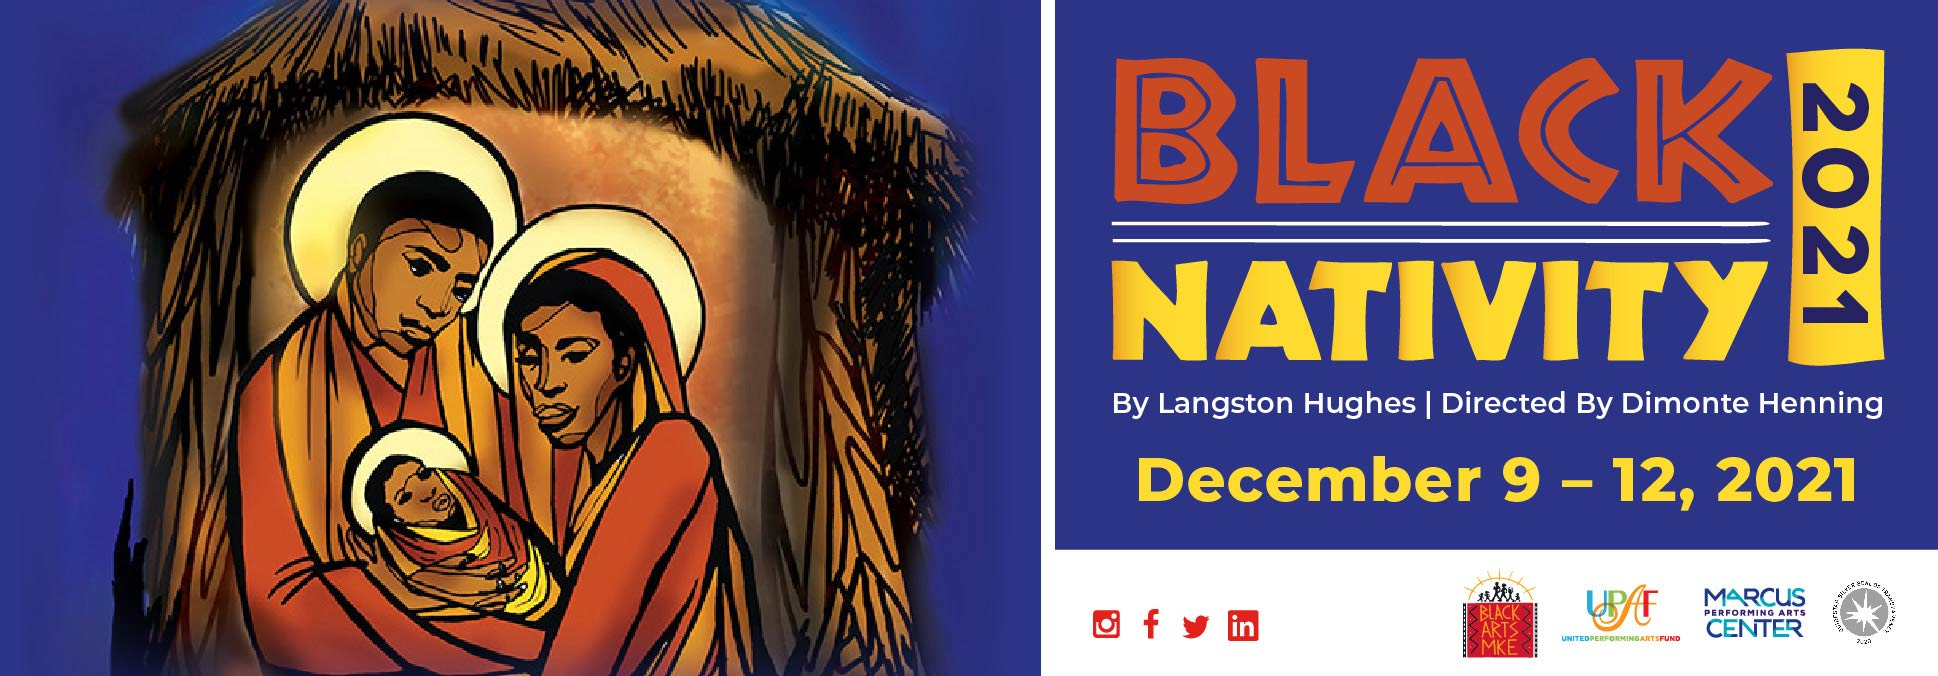 Black Nativity by Langston Hughes at the Marcus Center in Milwaukee